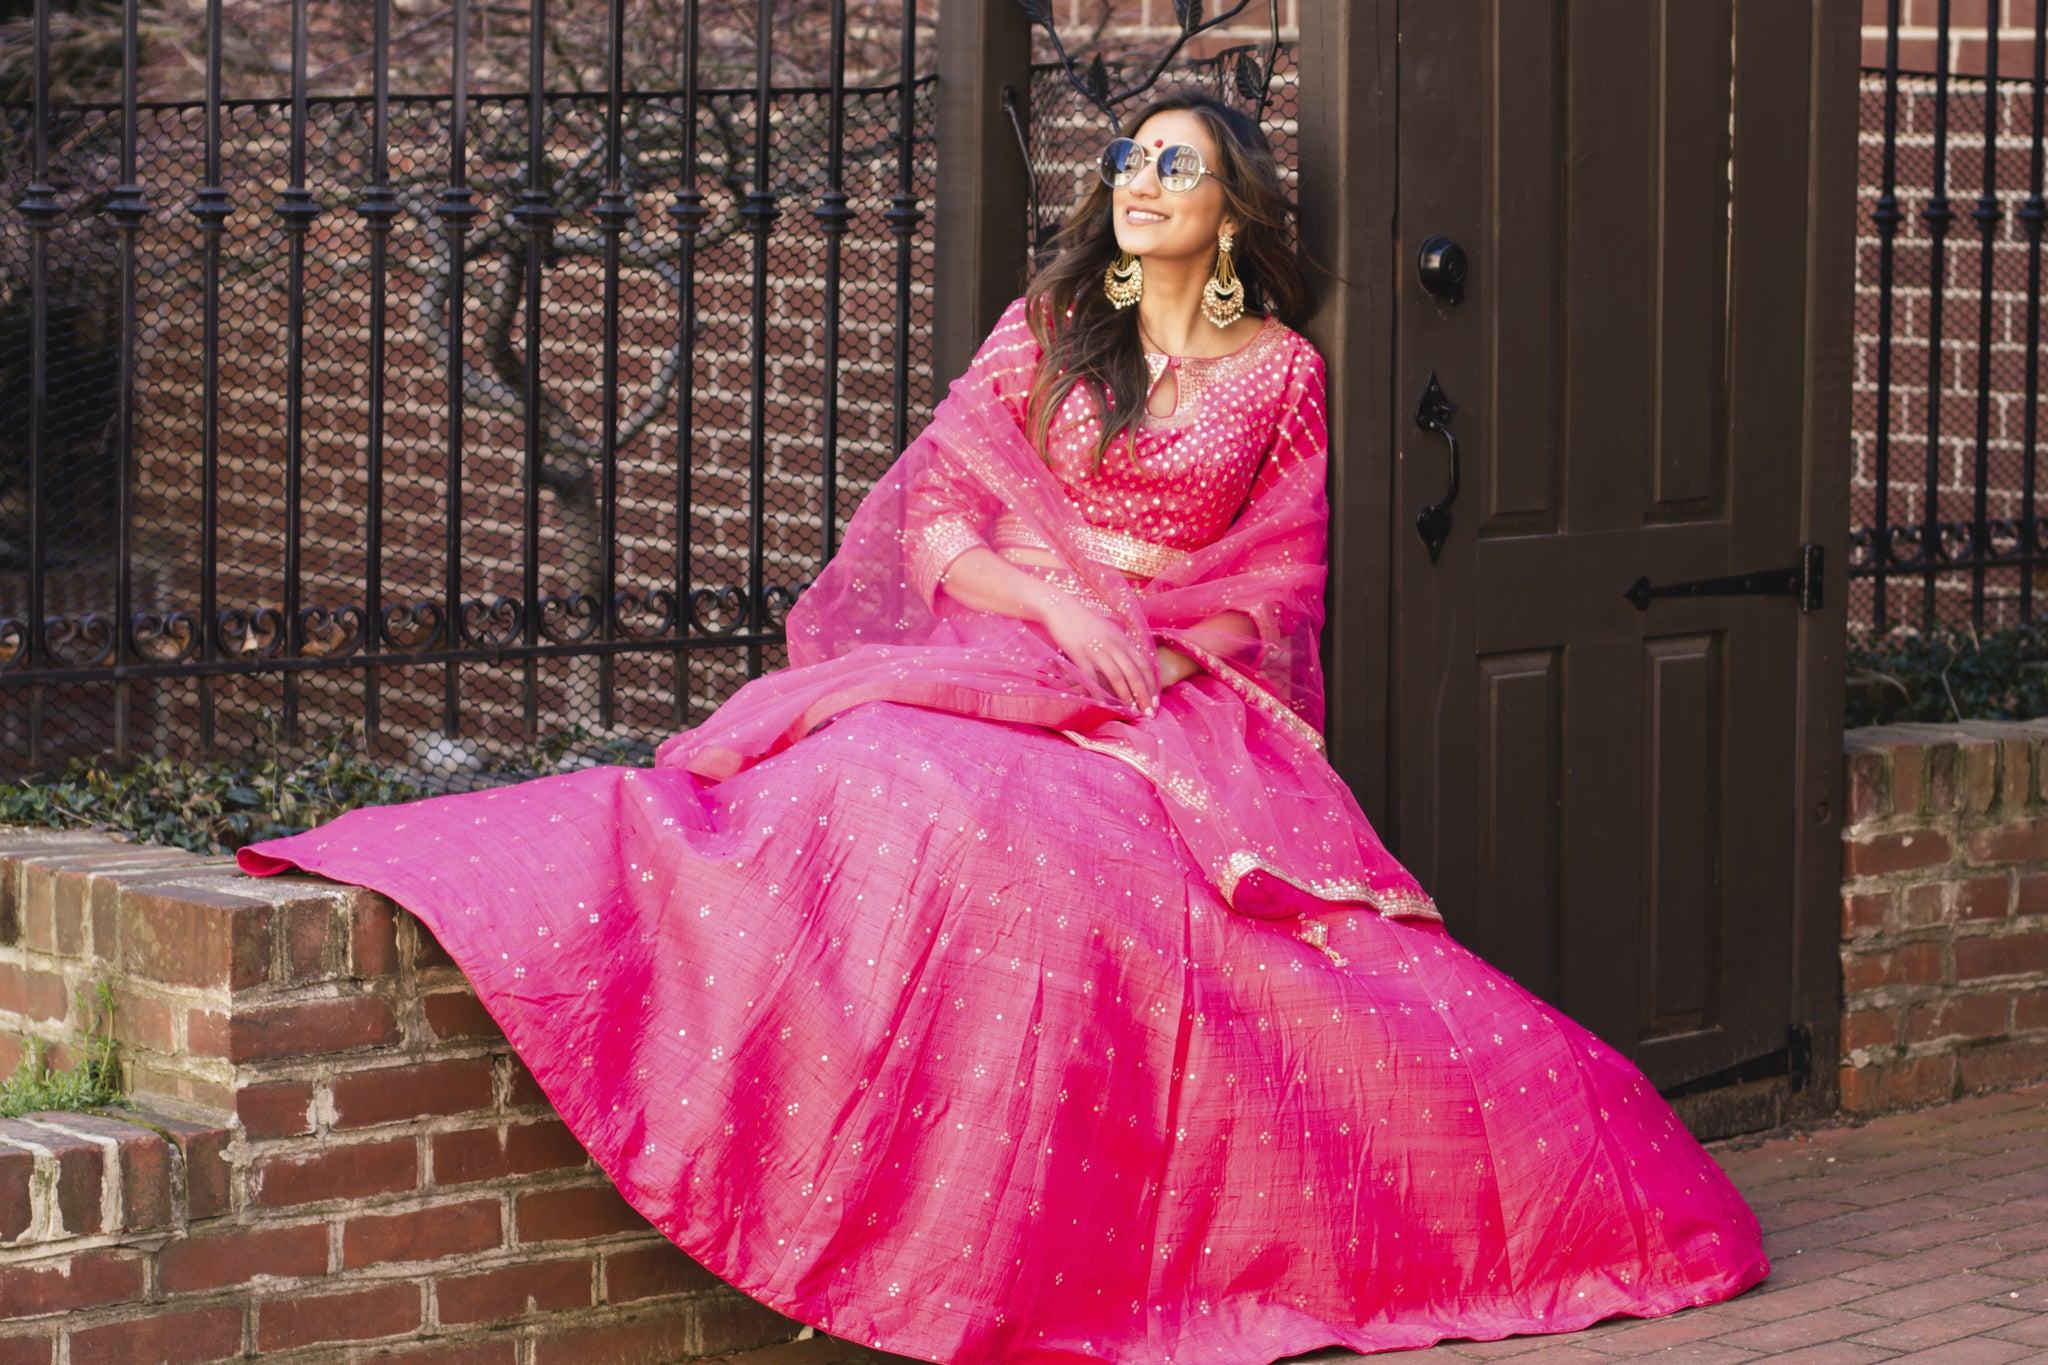 It's getting Hot pink in here: Begin the 2019 festive season in a hot pink lndian Ethnic outfit